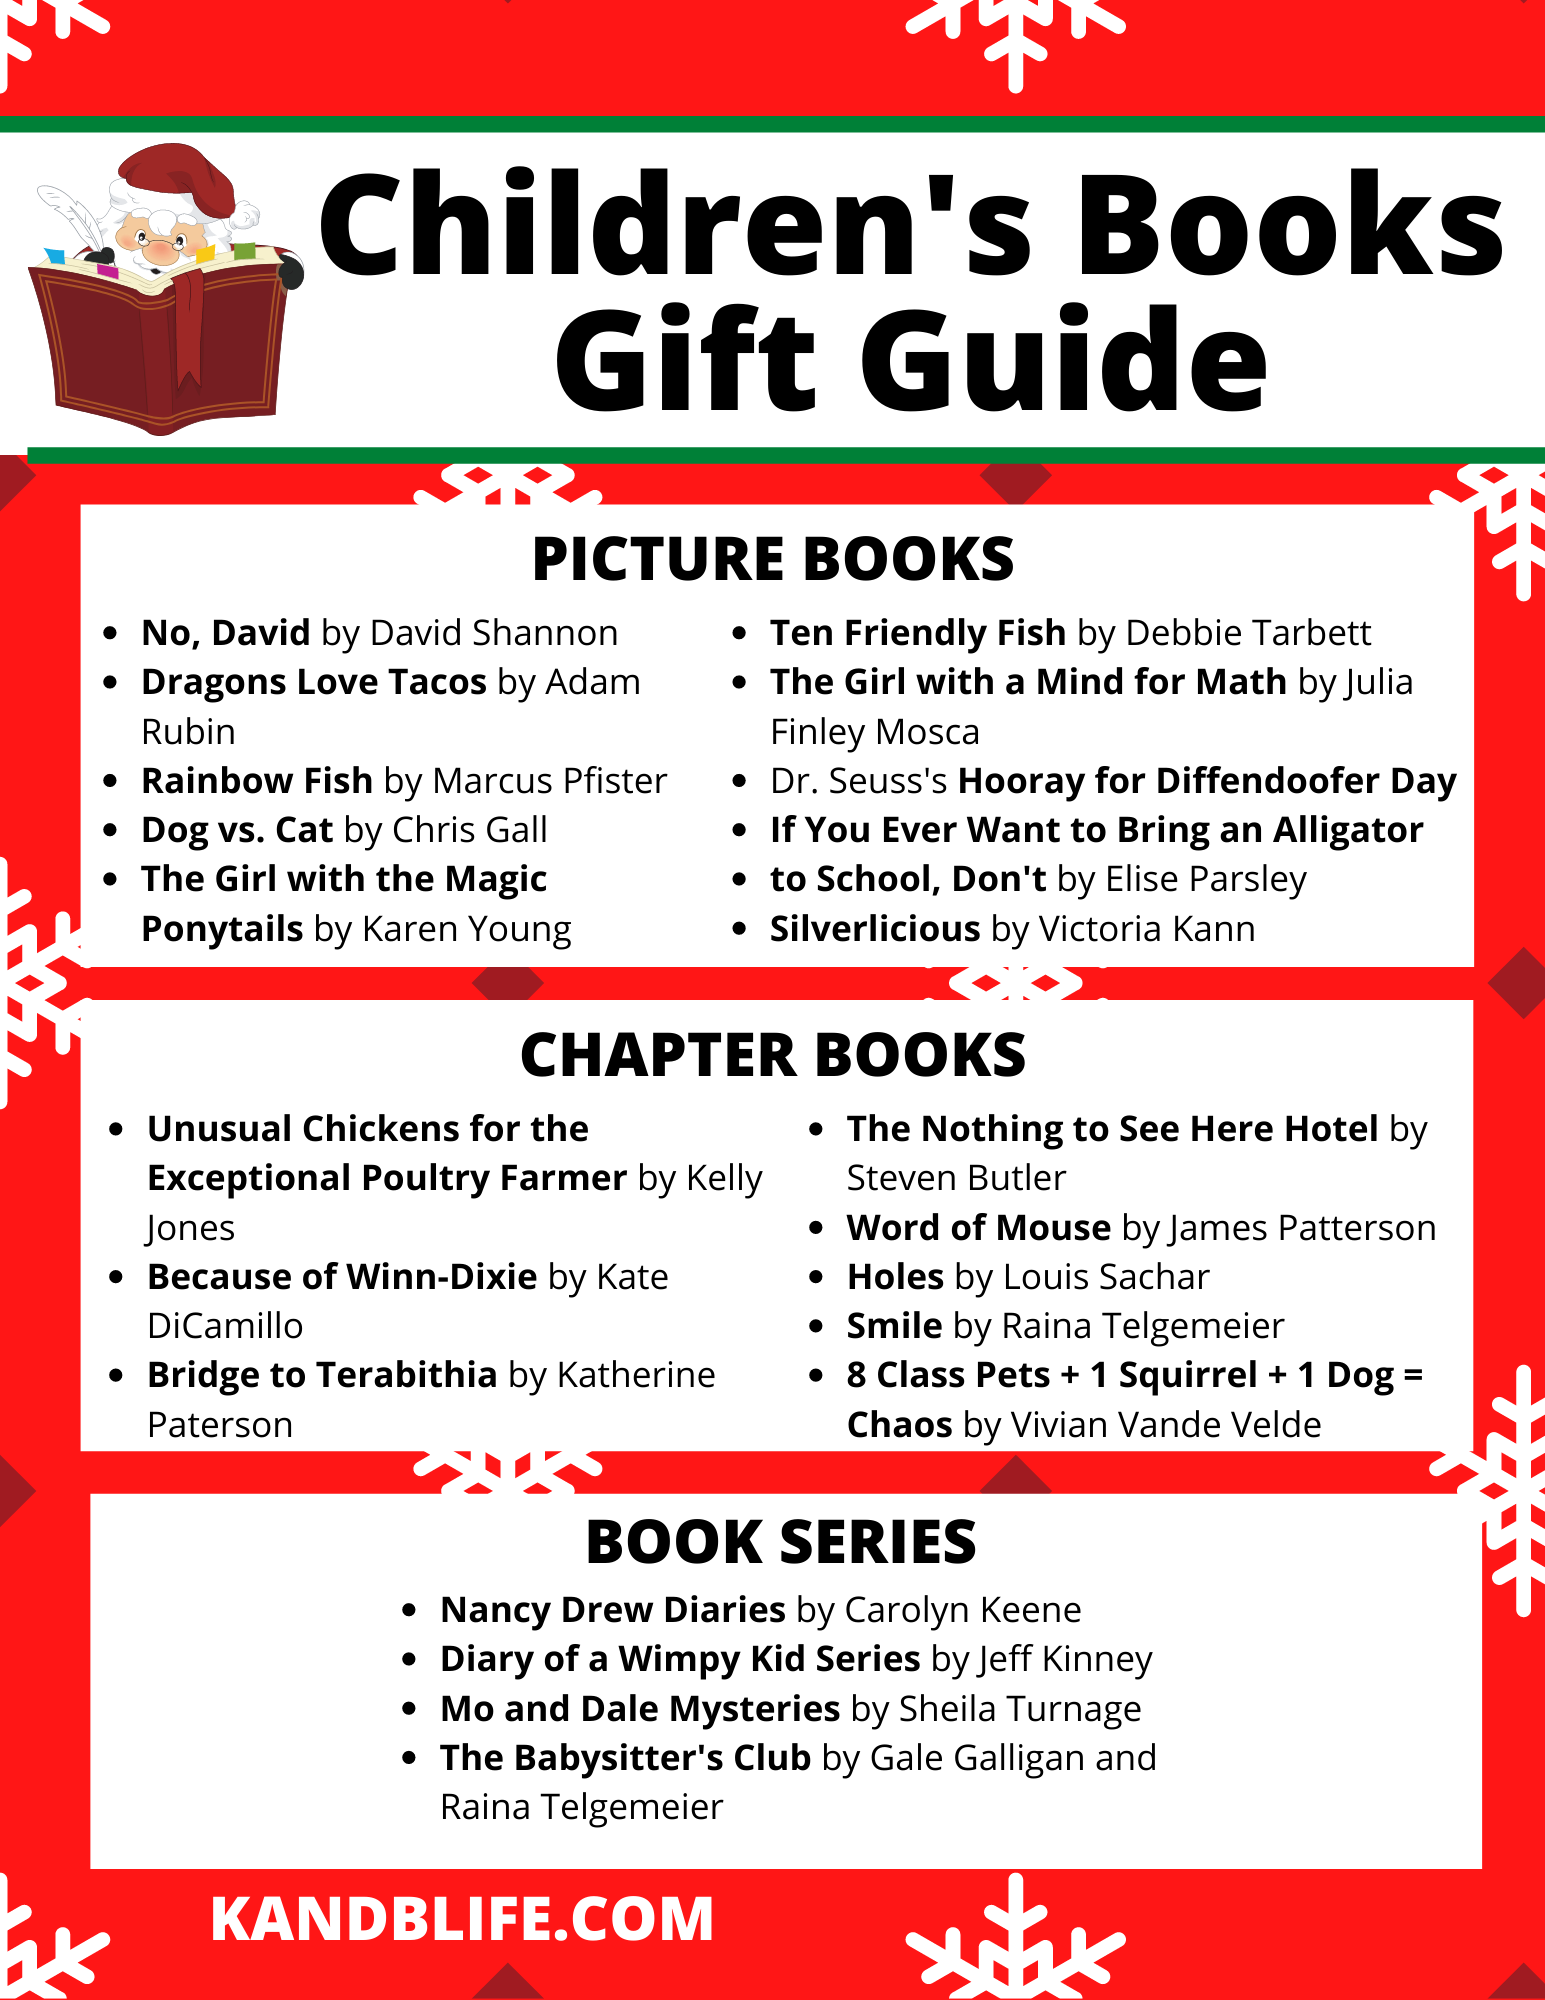 A red and white Children's Books Gift Guide.